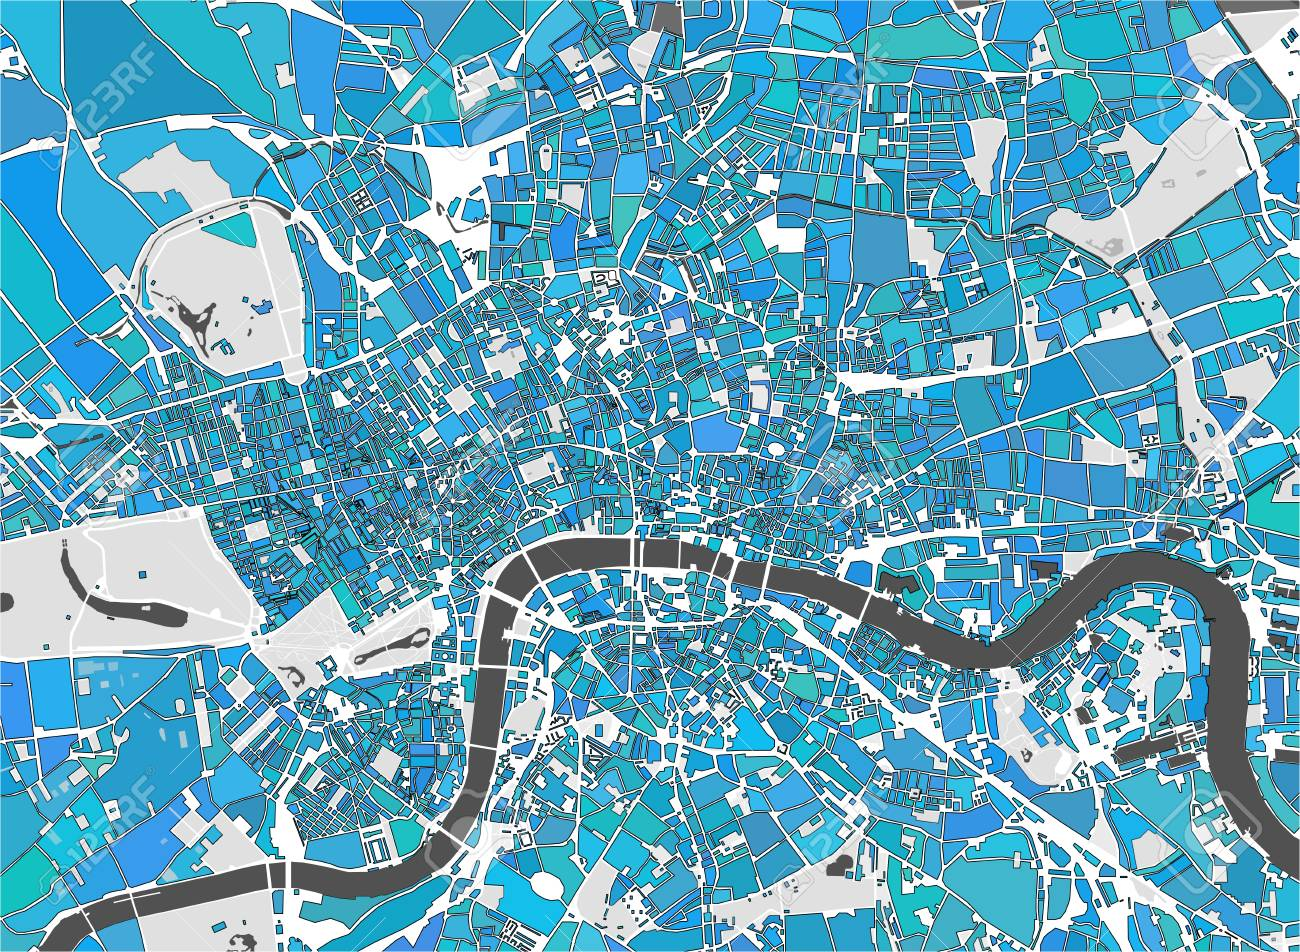 Map Of The City Of London.Stock Illustration